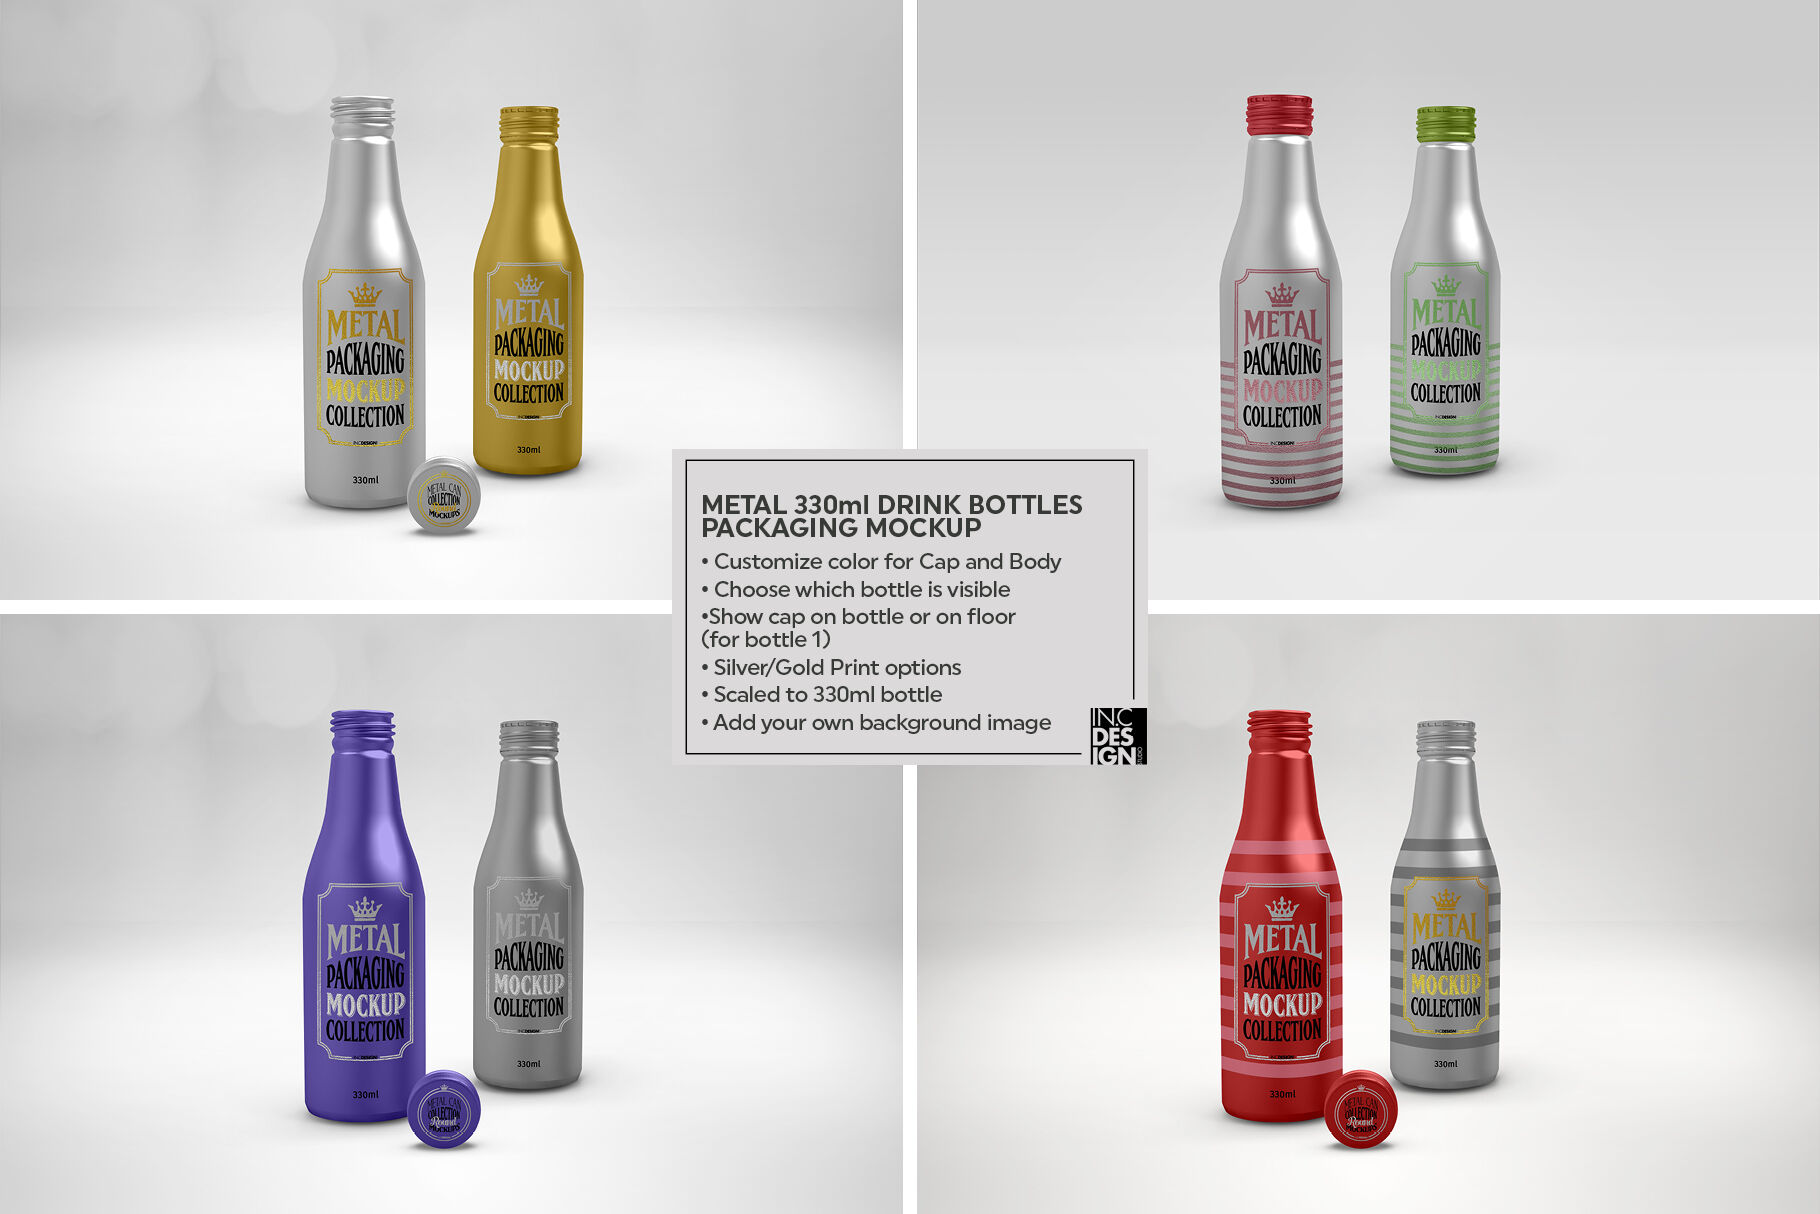 Download 1 Liter Soda Bottle Mockup Free Psd Yellowimages